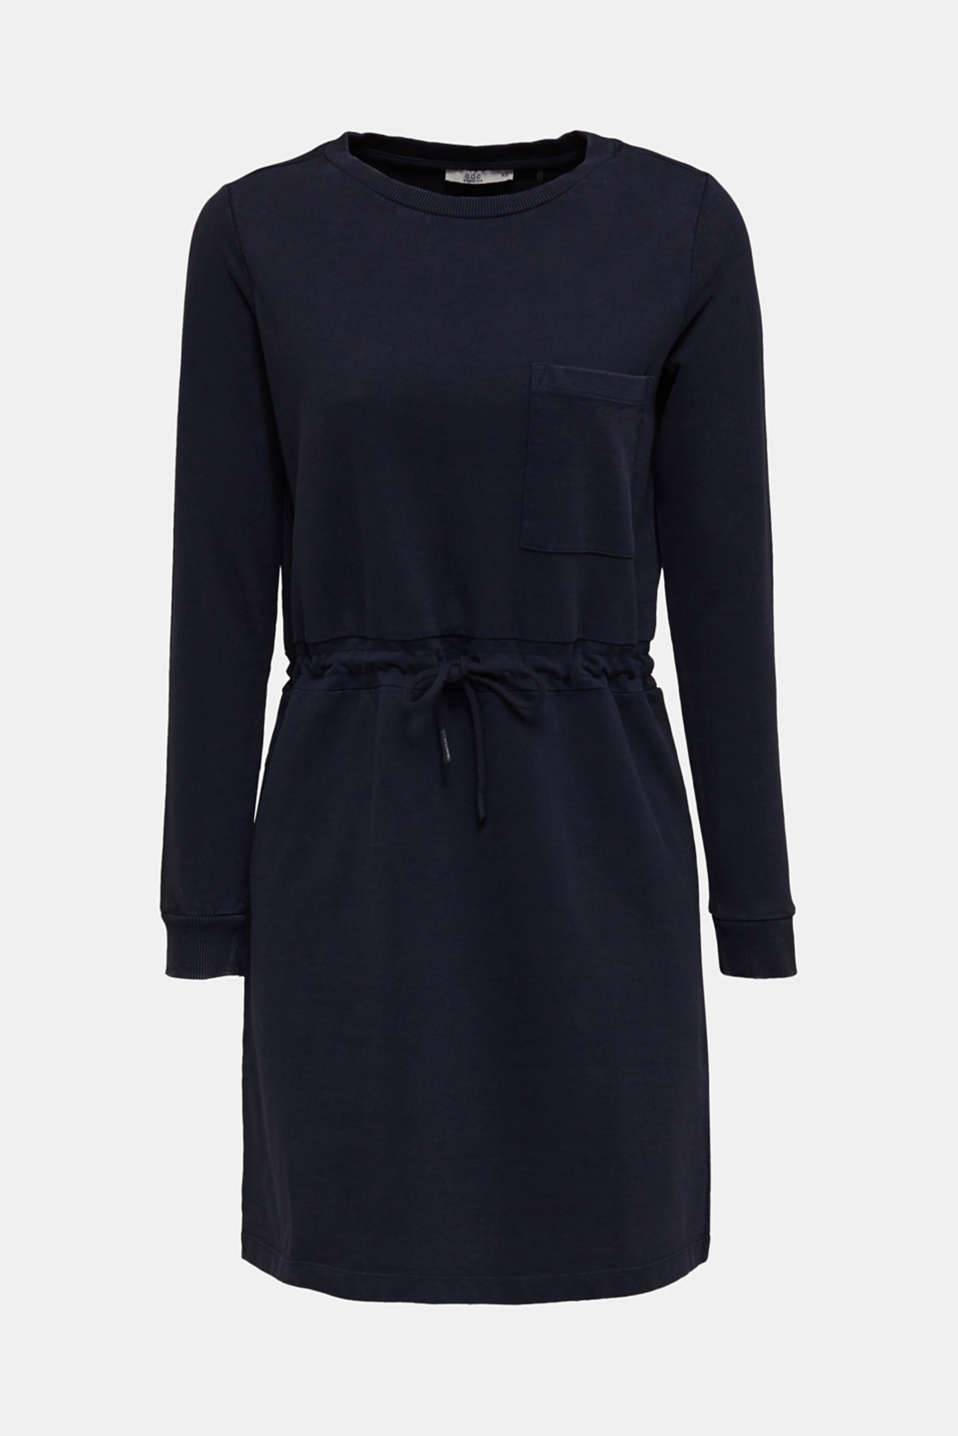 Sweatshirt dress with a drawstring, 100% cotton, NAVY, detail image number 6